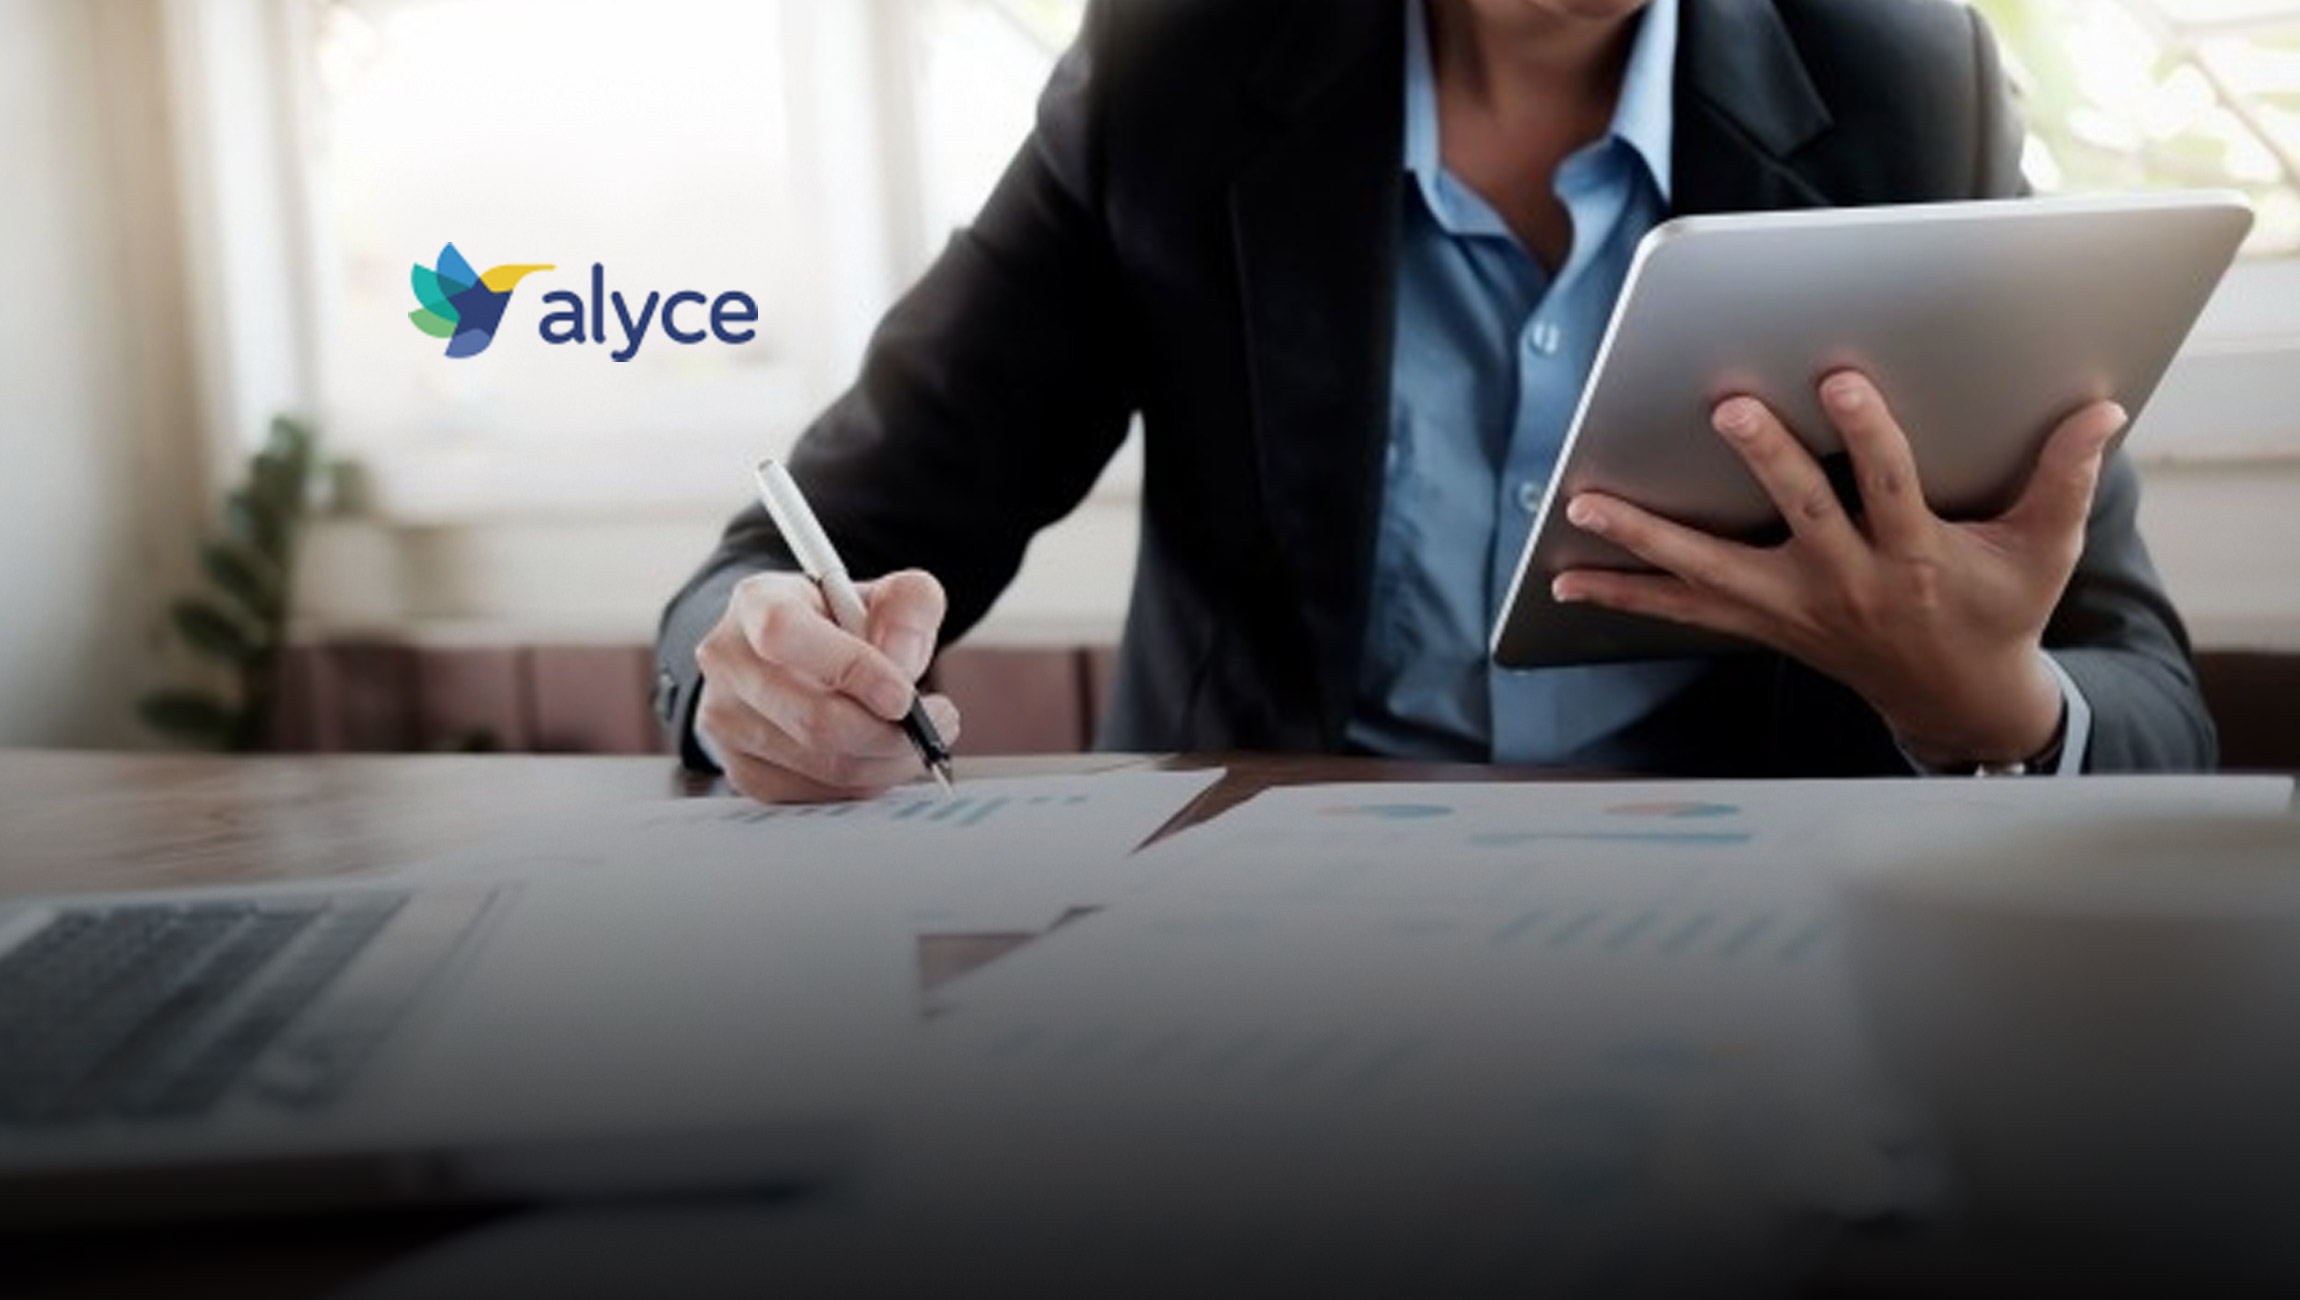 Alyce Raises $30 Million Series B to Personalize Corporate Gifting, Scale More Authentic, Less Wasteful Swag and Direct Mail